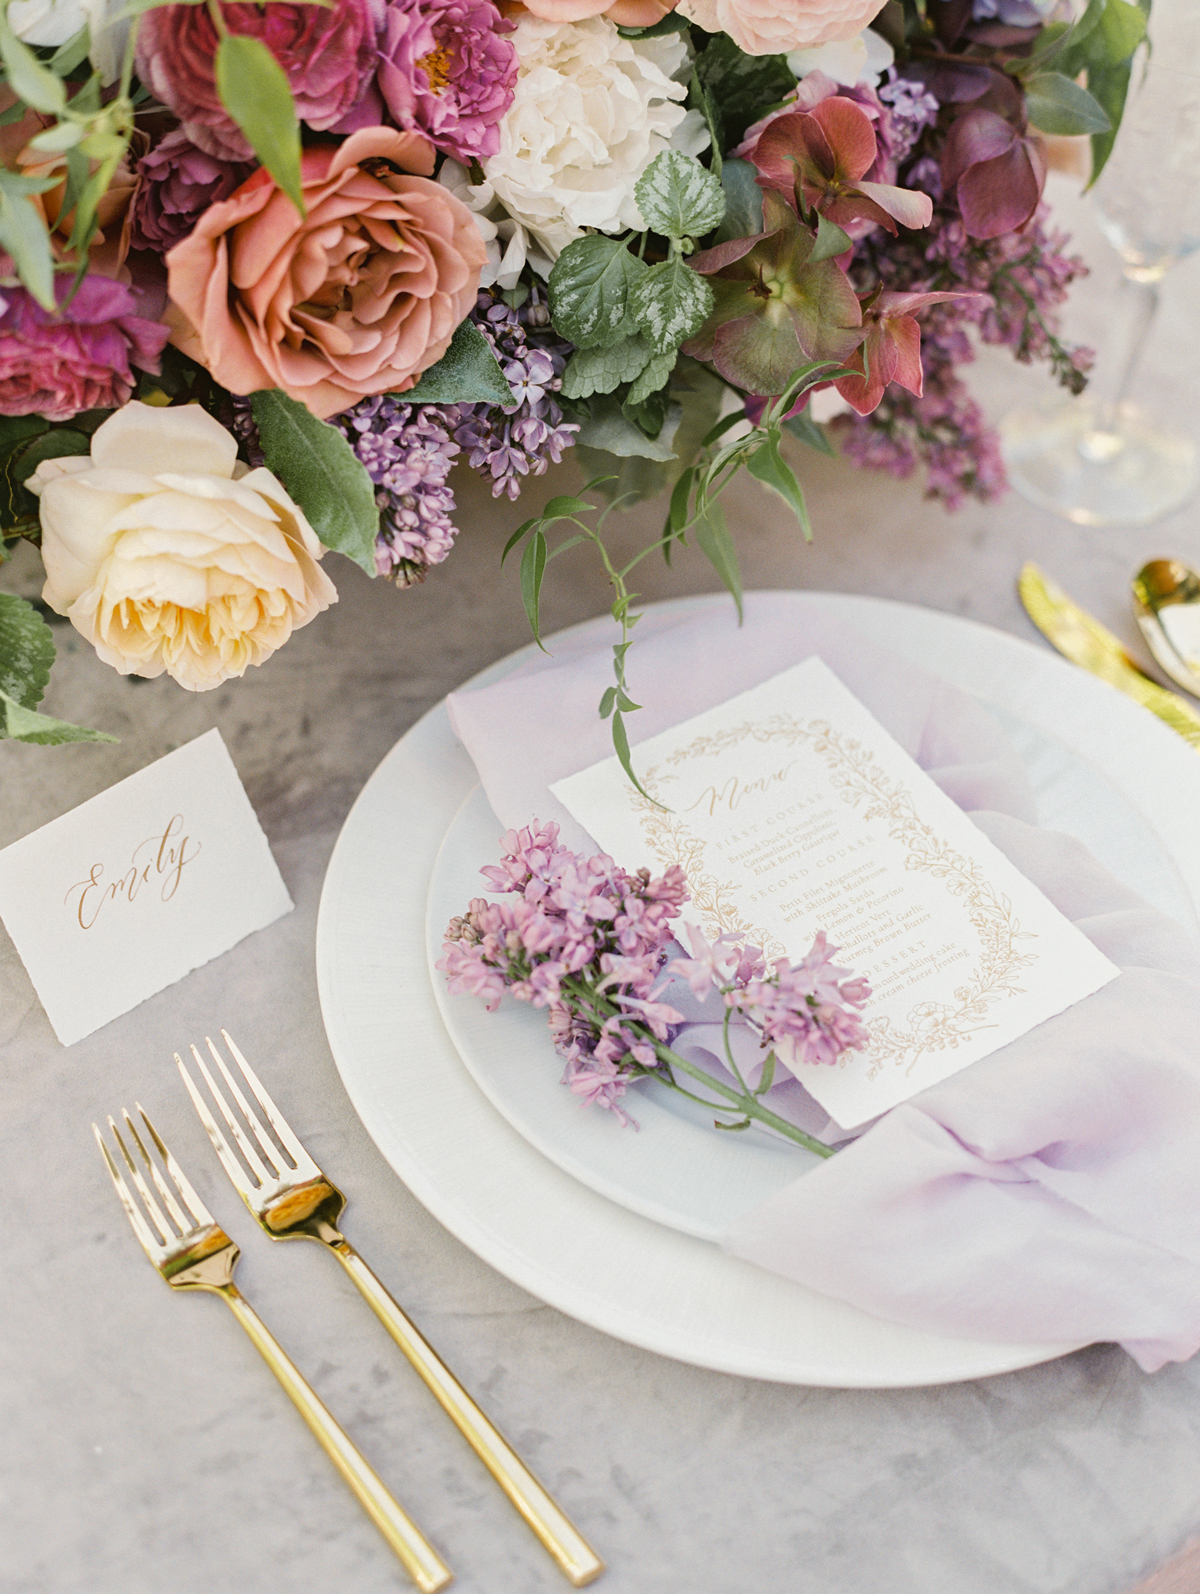 lilac sprig on plate